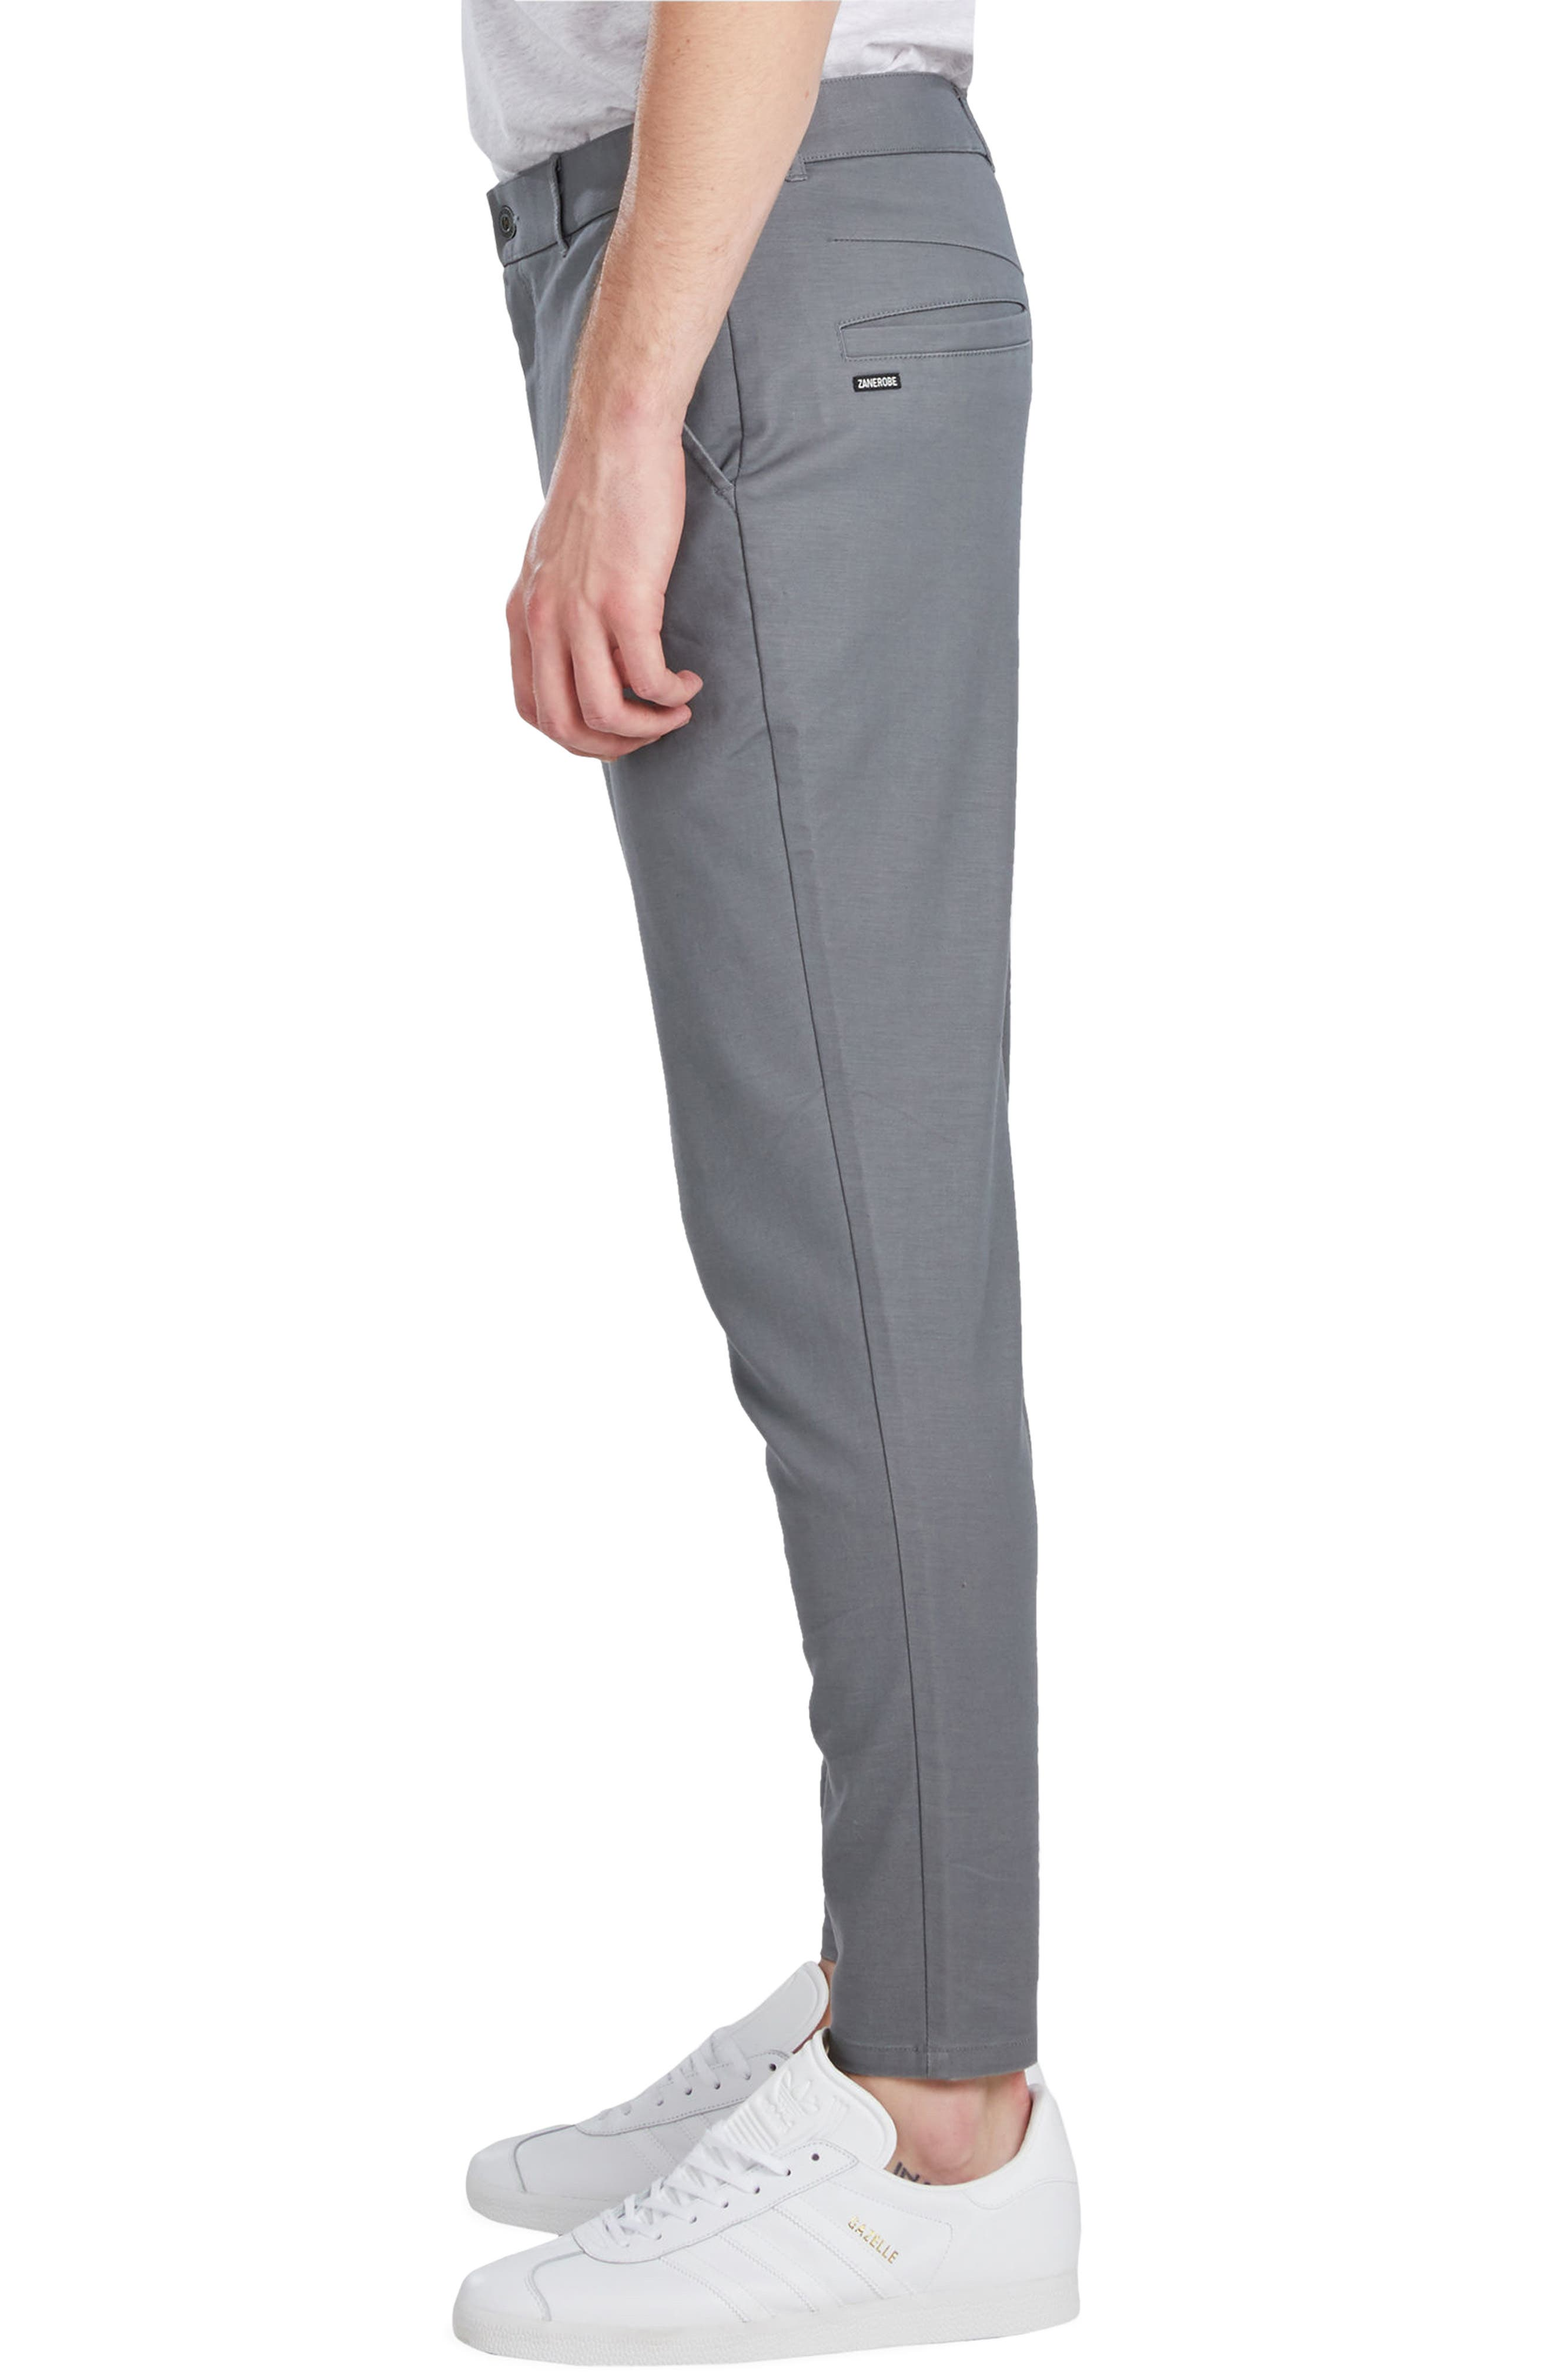 'Sharpshot' Slouchy Skinny Fit Chinos,                             Alternate thumbnail 3, color,                             031